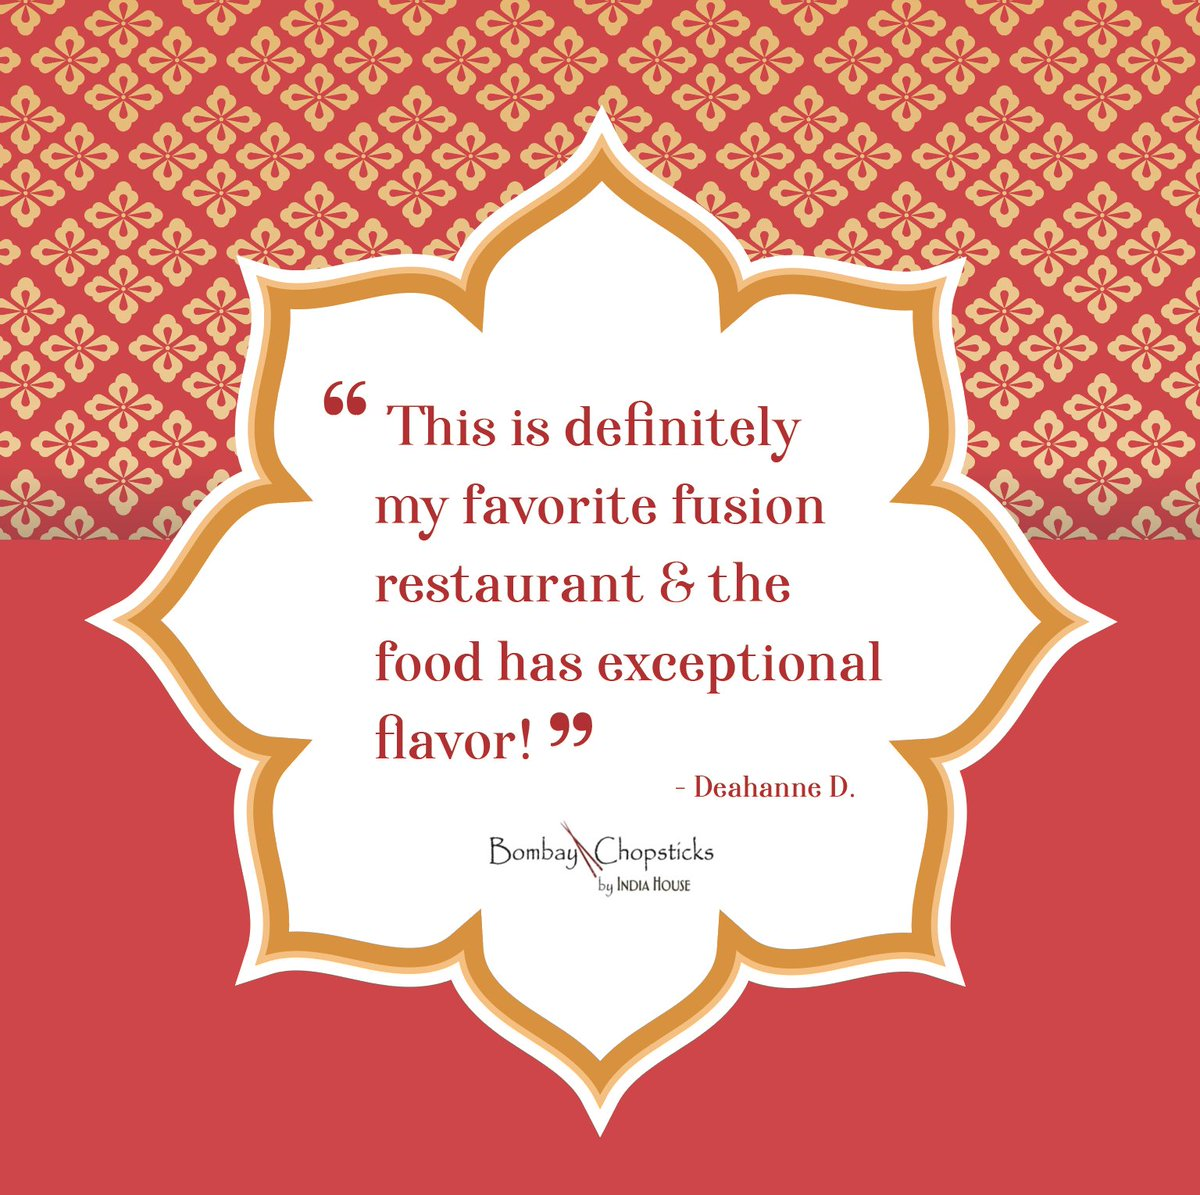 """""""Favorite fusion restaurant""""? WOWZA 😍  Thank you! ✨ We think you're pretty exceptional, too!  #bombaychopsticks #bombaychopsticksbyindiahouse #chicagorestaurants #Chicagoeats #Tuesday #HappyHour #Chopsticks #NapervilleIL #NapervilleBusiness #HoffmanEstatesIL #ChicagoEats https://t.co/L6y1OBwNl6"""